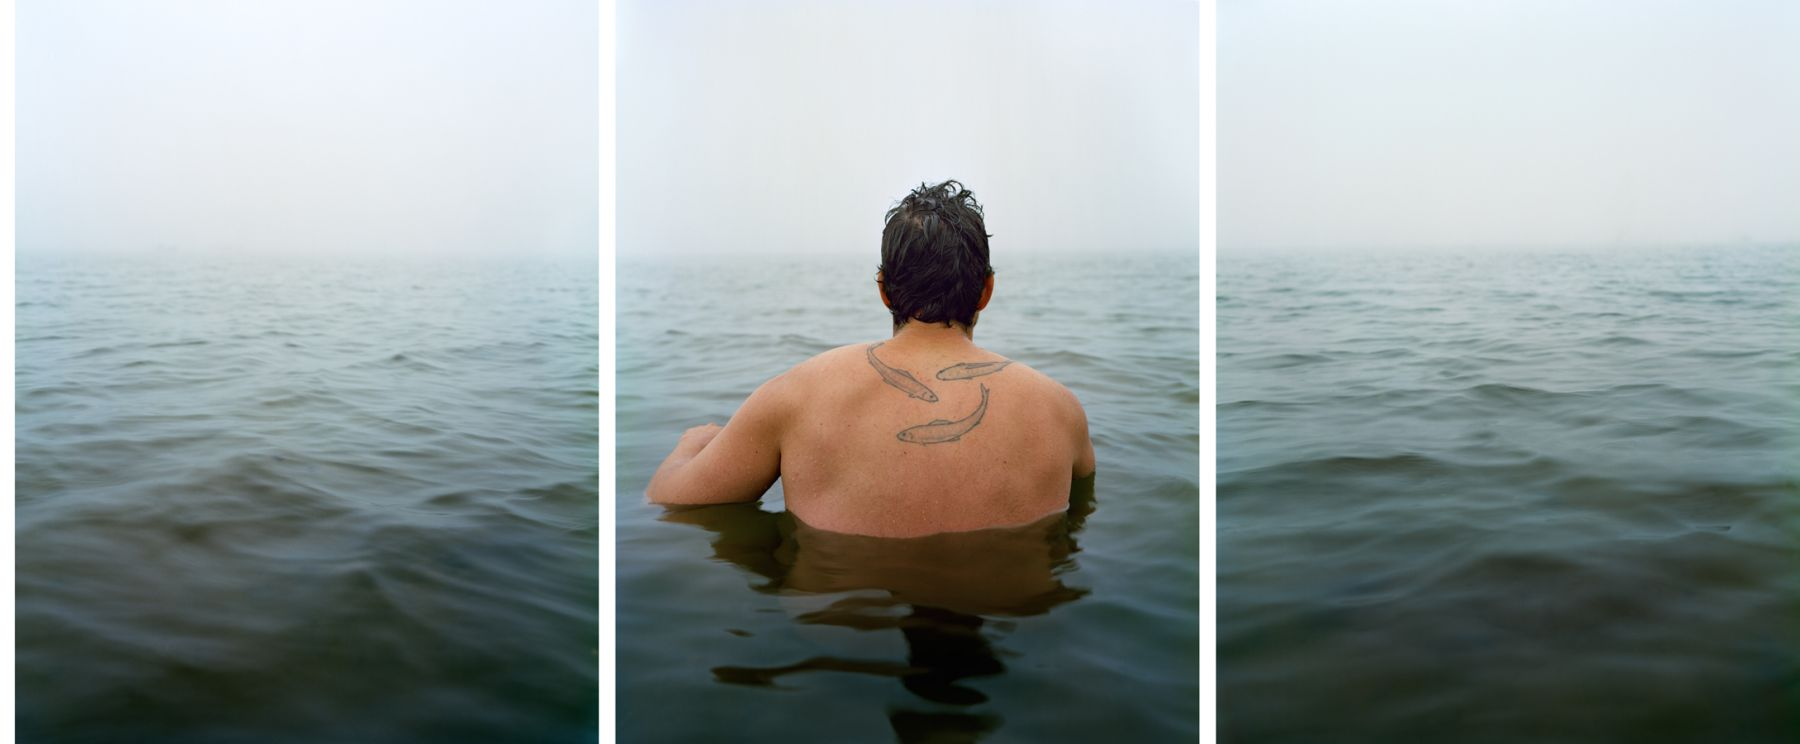 Ebb, 2012. Three-panel archival pigment print, available as 24 x 60 or 40 x 90 inches.